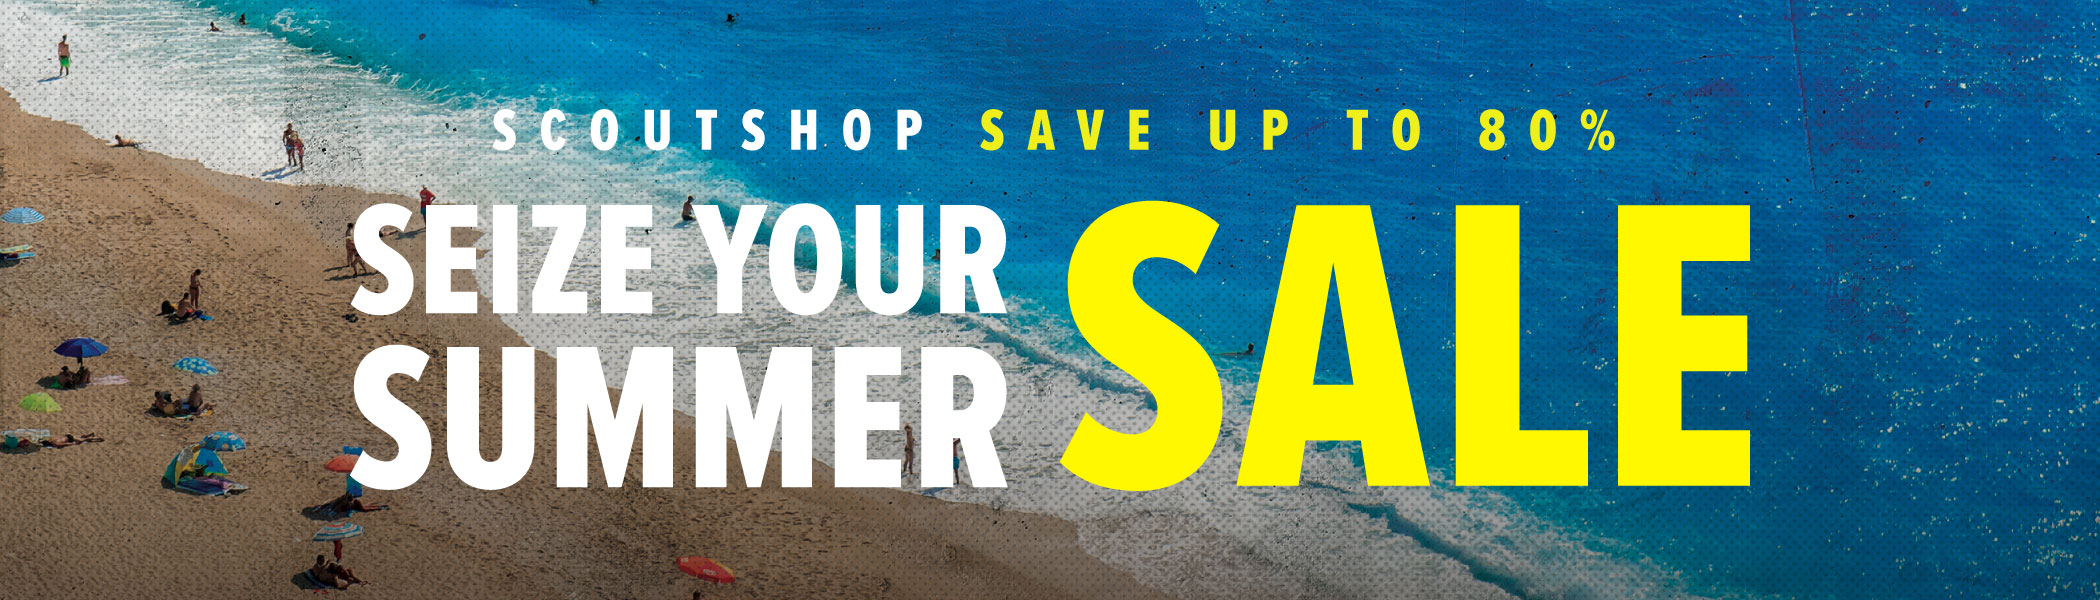 Summer Blowout - Web Banner 1 (2100x600)